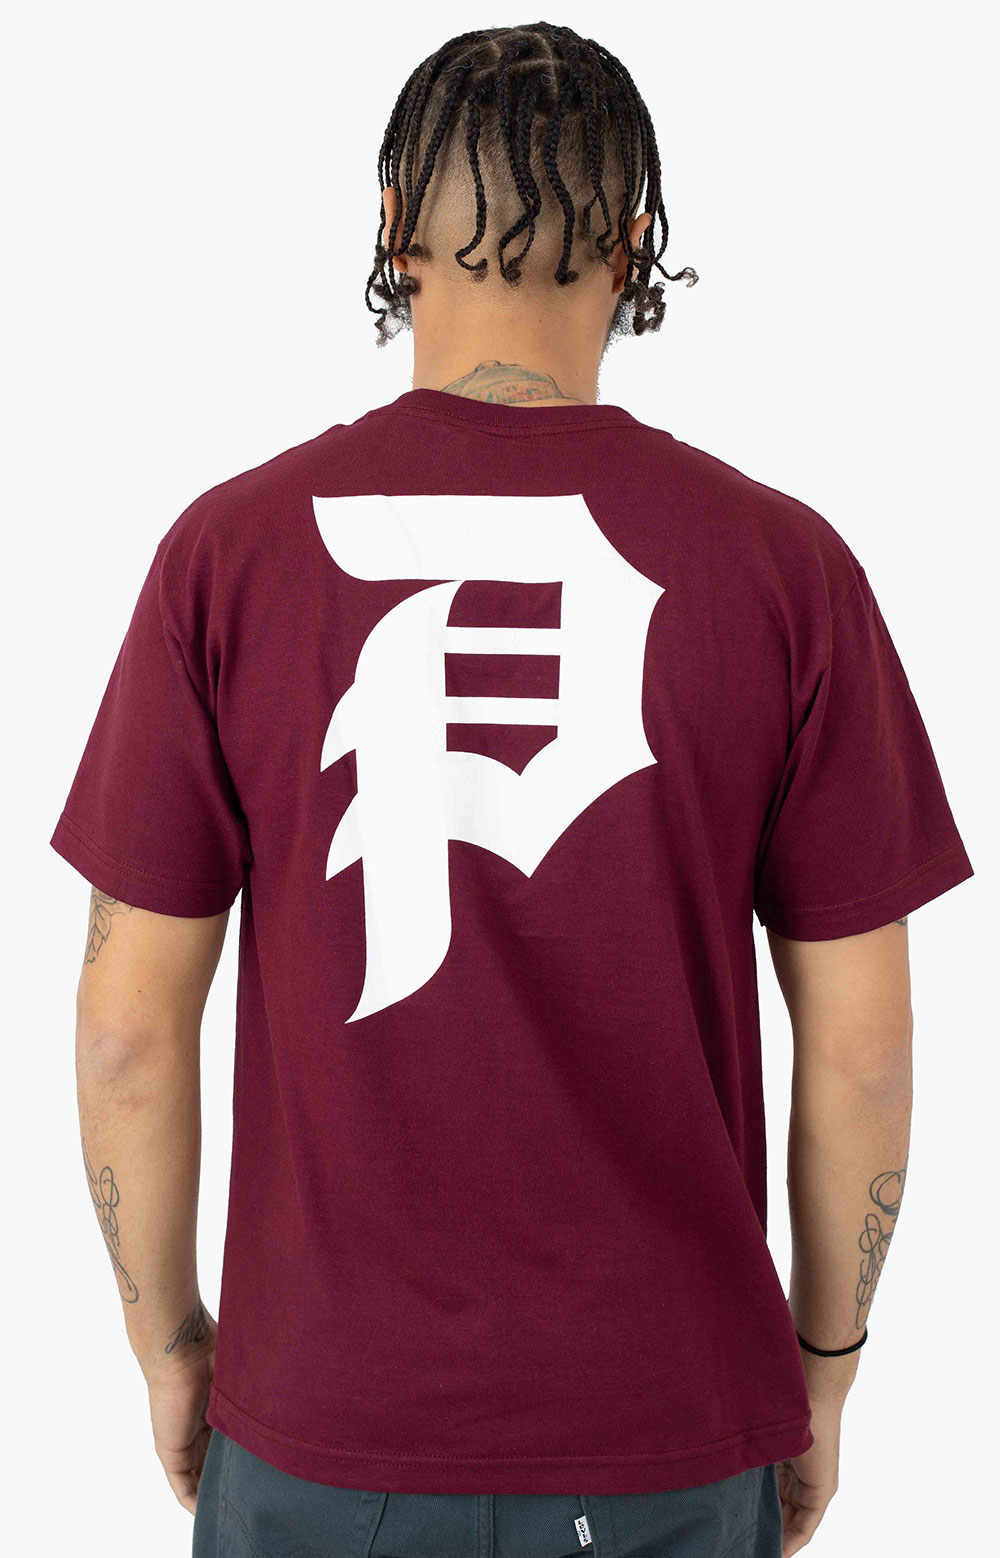 Dirty P T-Shirt - Burgundy